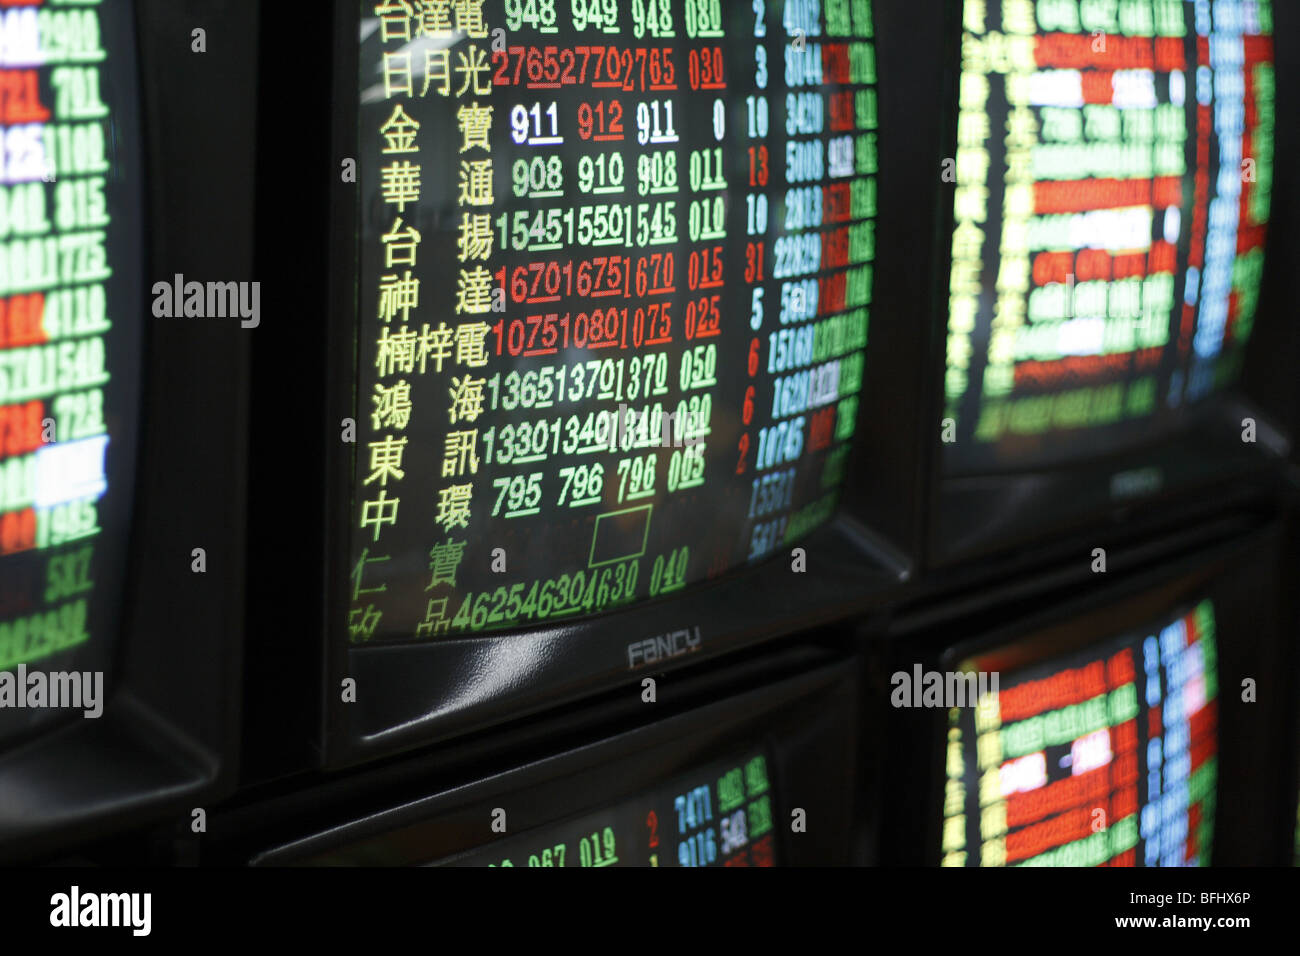 Stock Monitors, Taipei, Taiwan - Stock Image